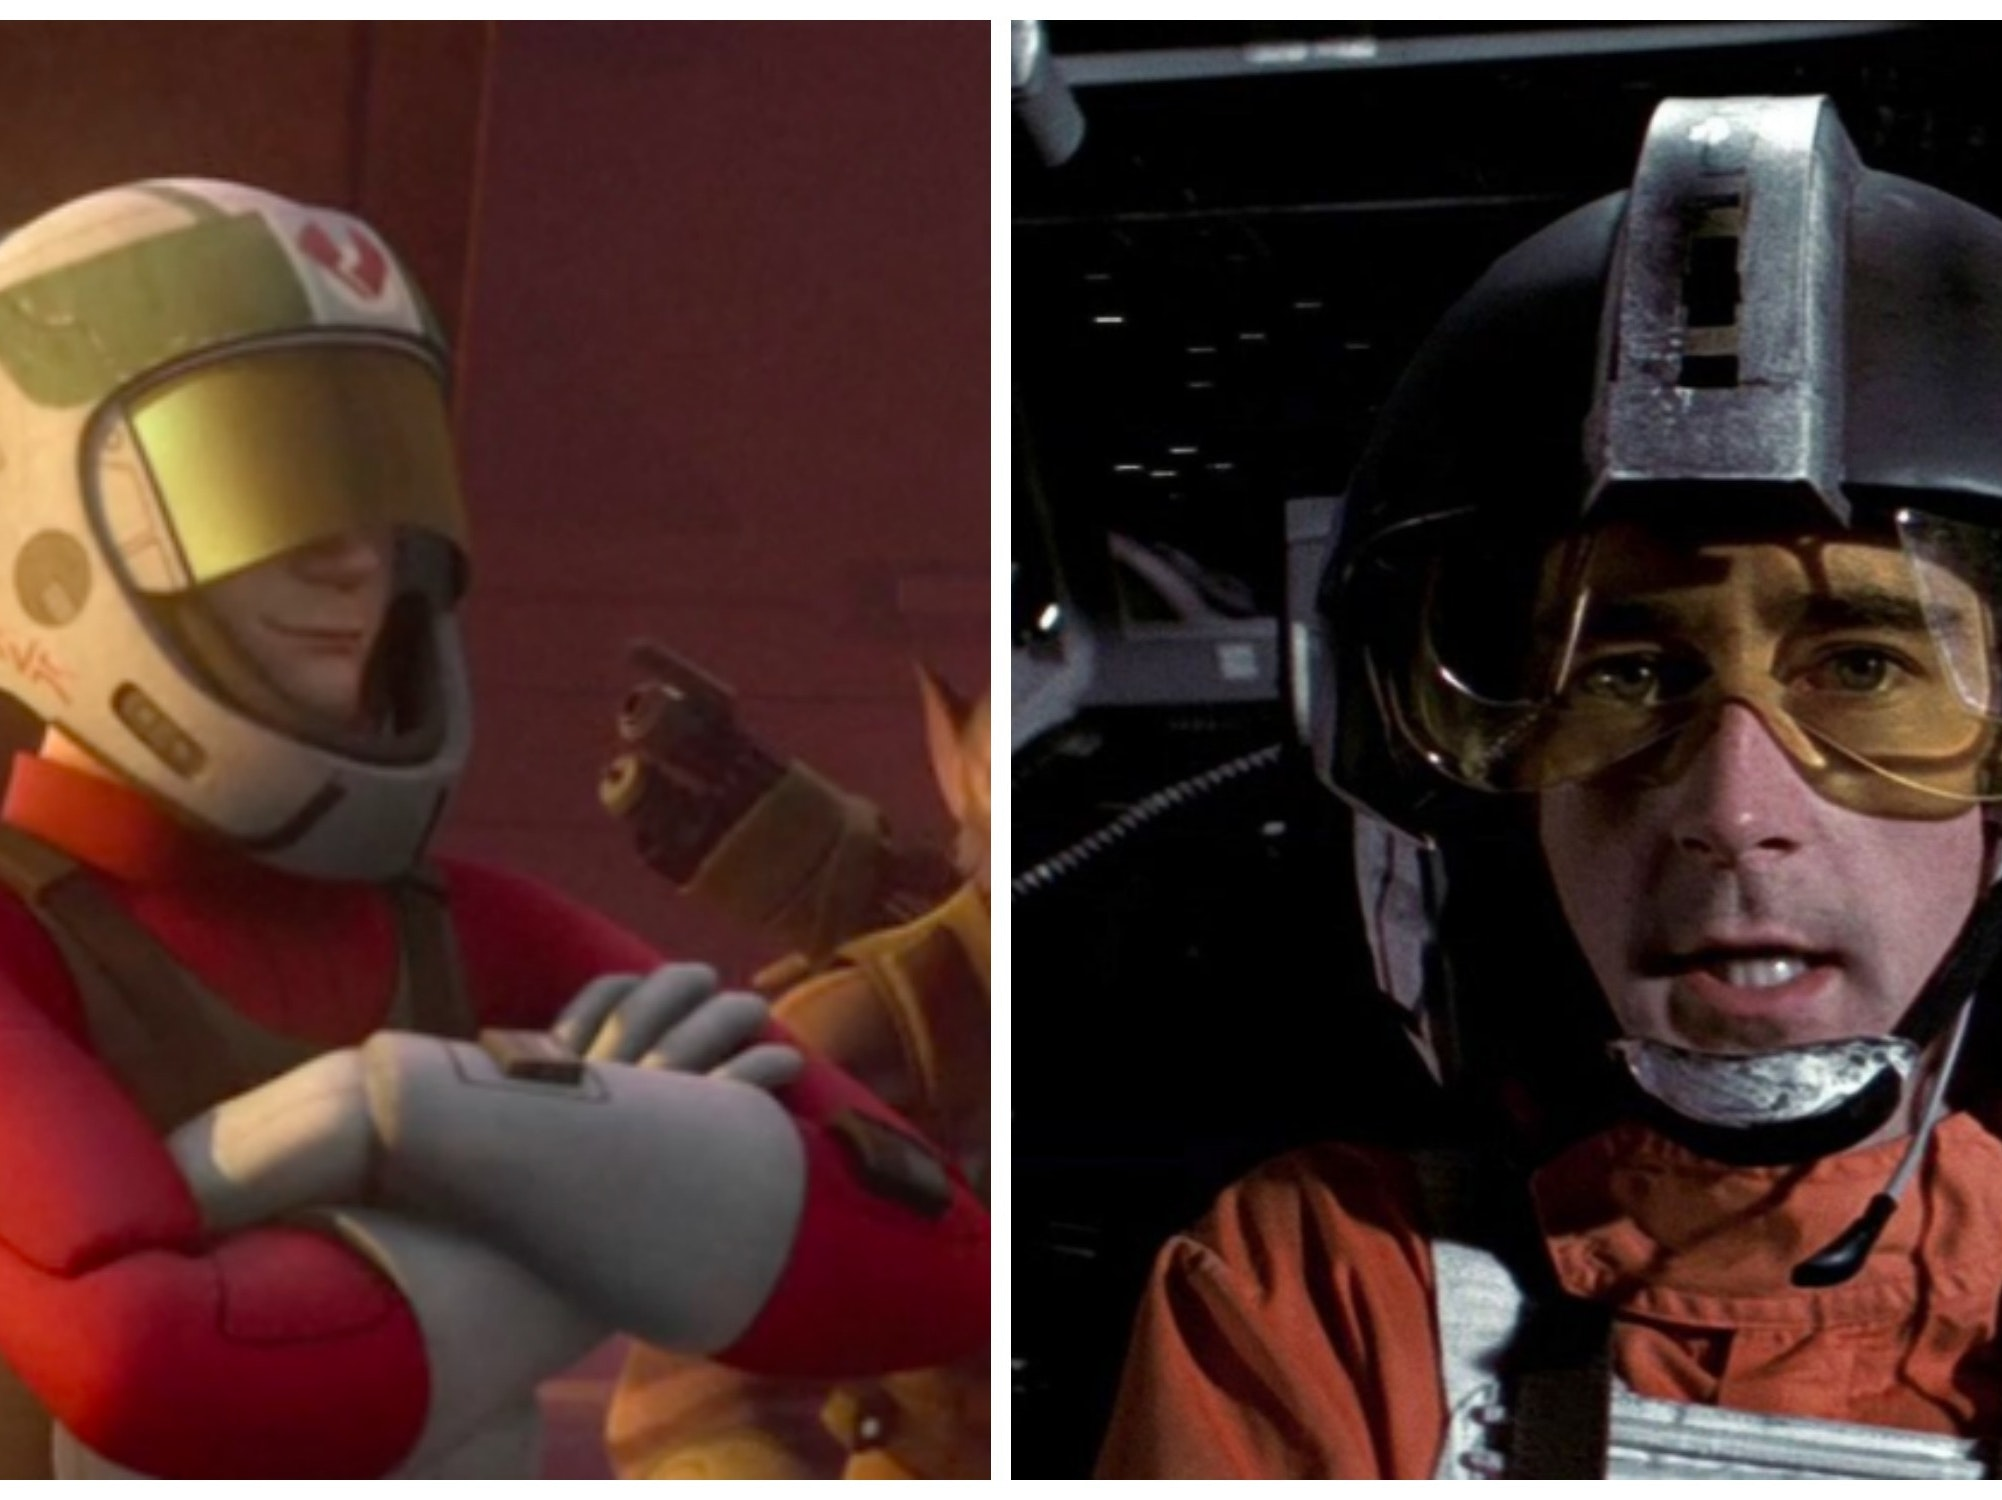 Wedge Antilles is a Slacker Pilot in 'Star Wars Rebels'